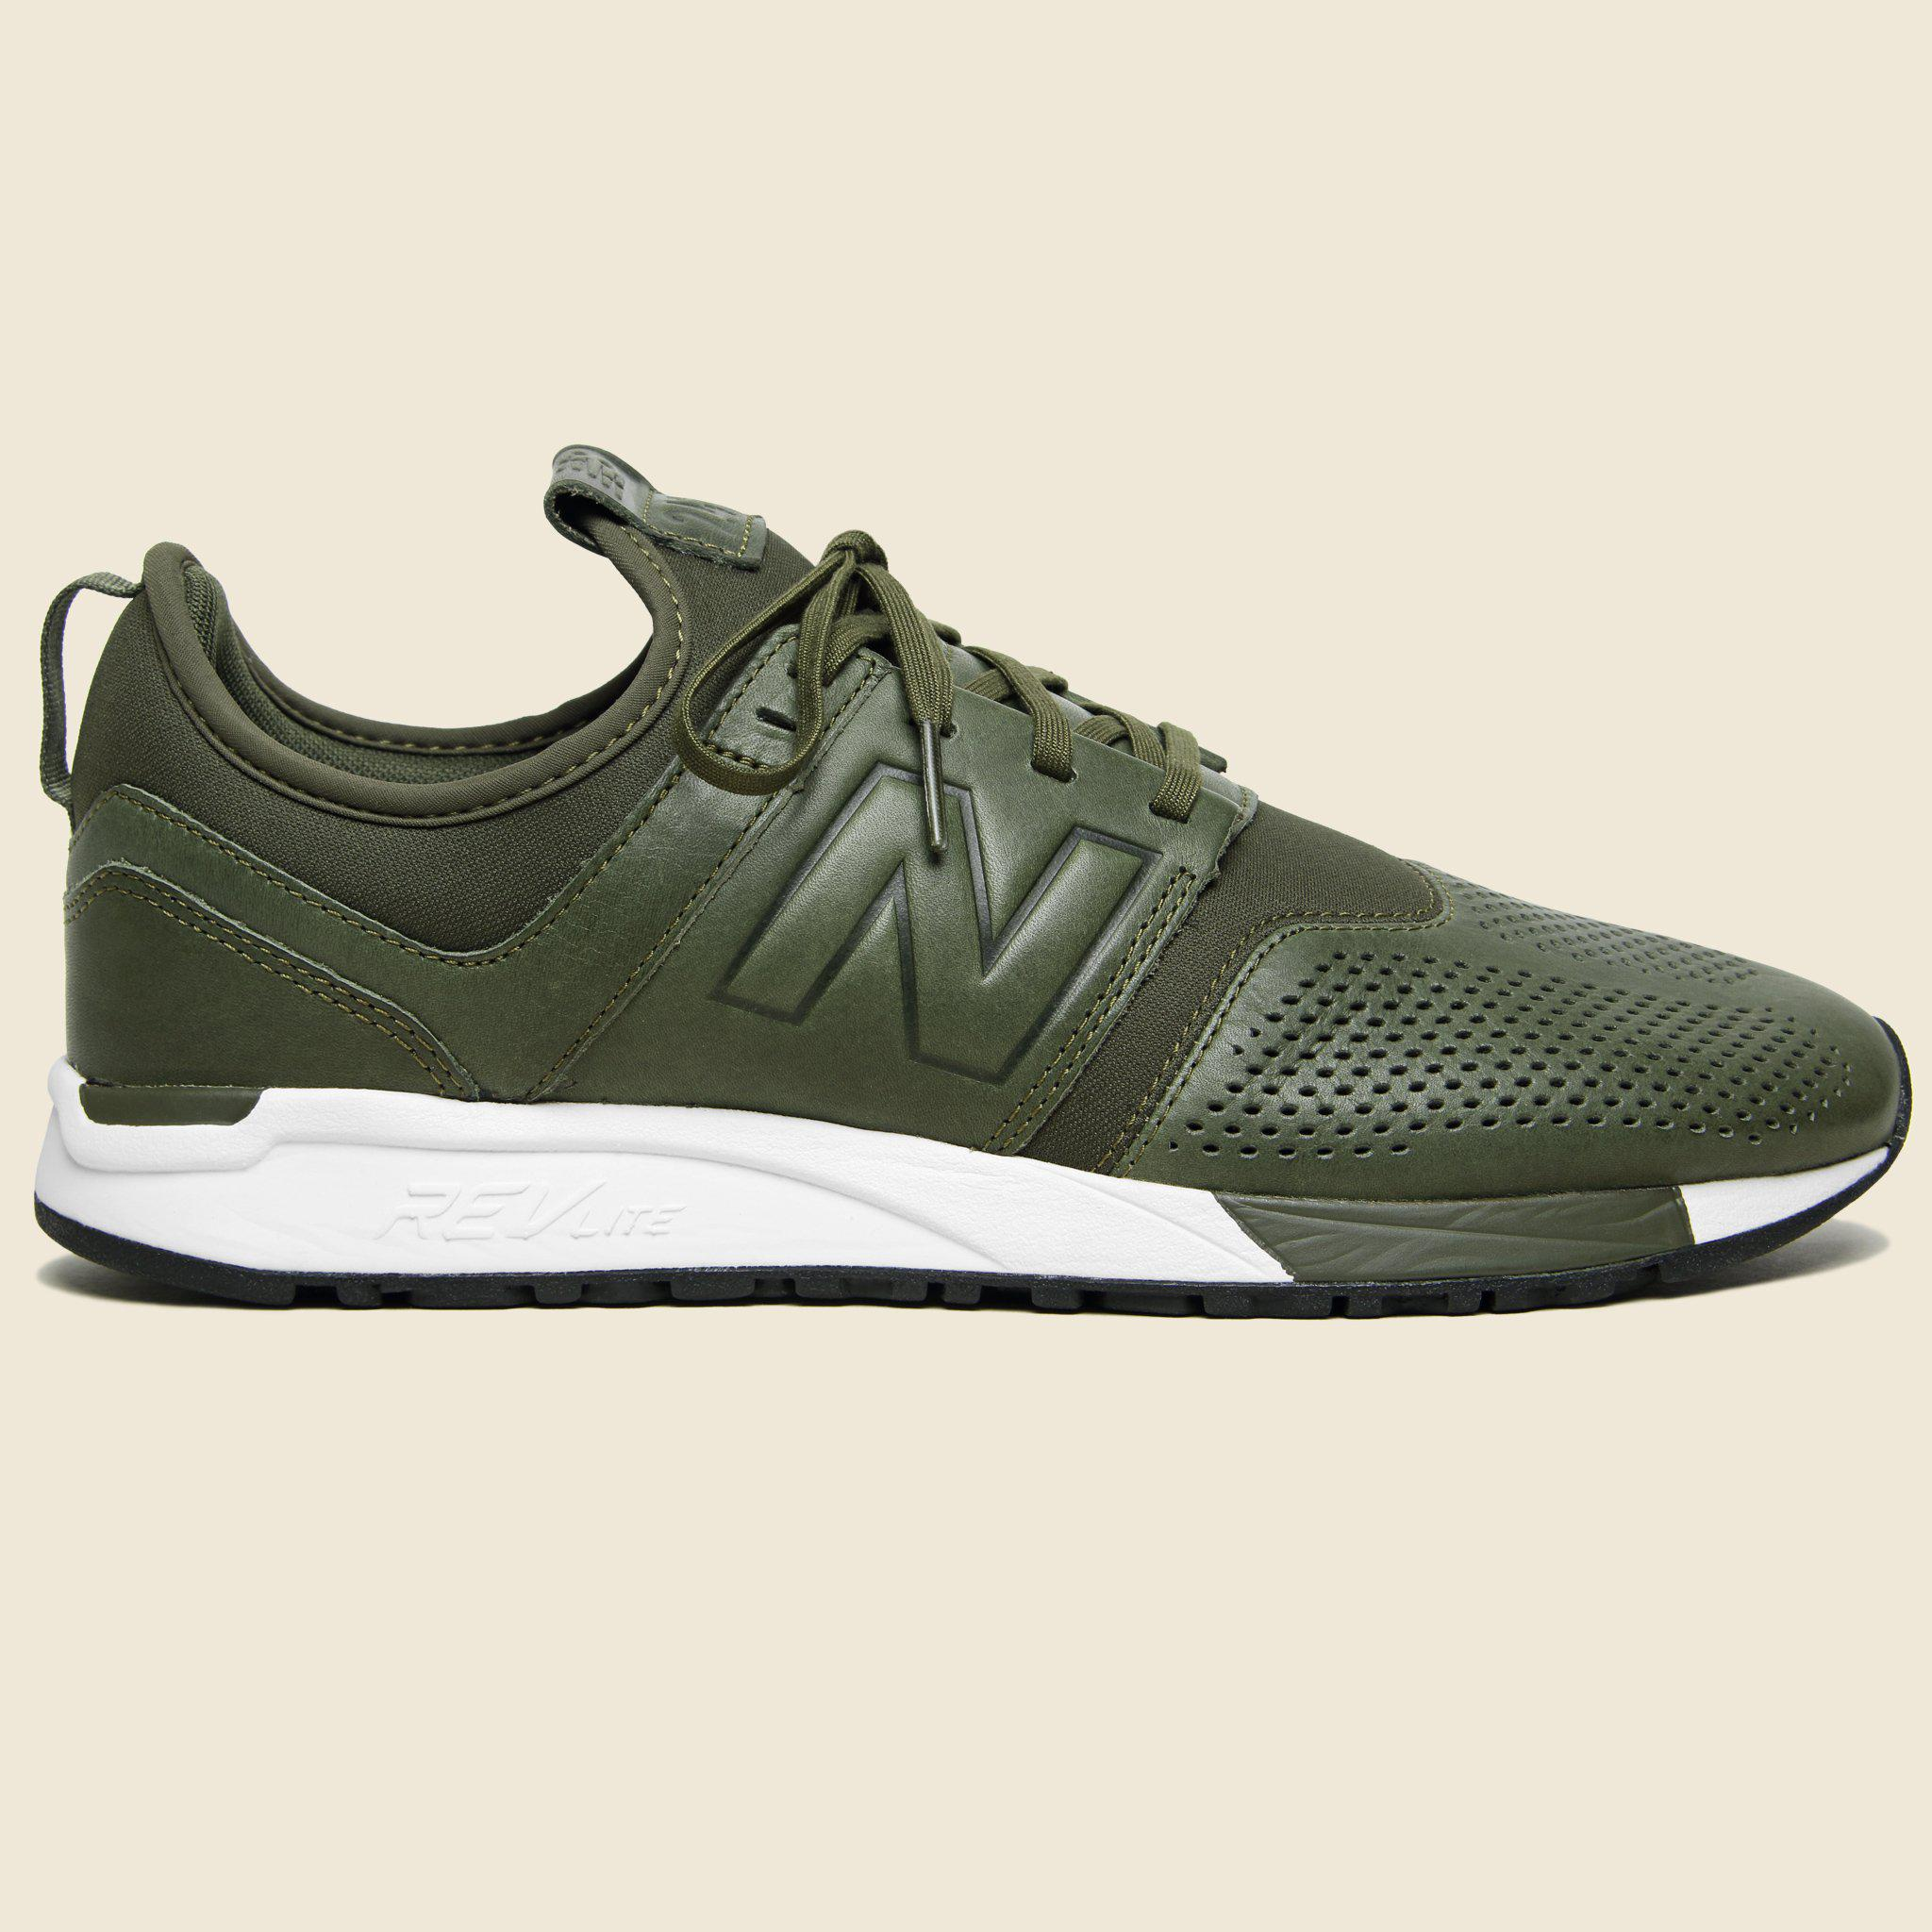 247 Leather Sneaker - Olive